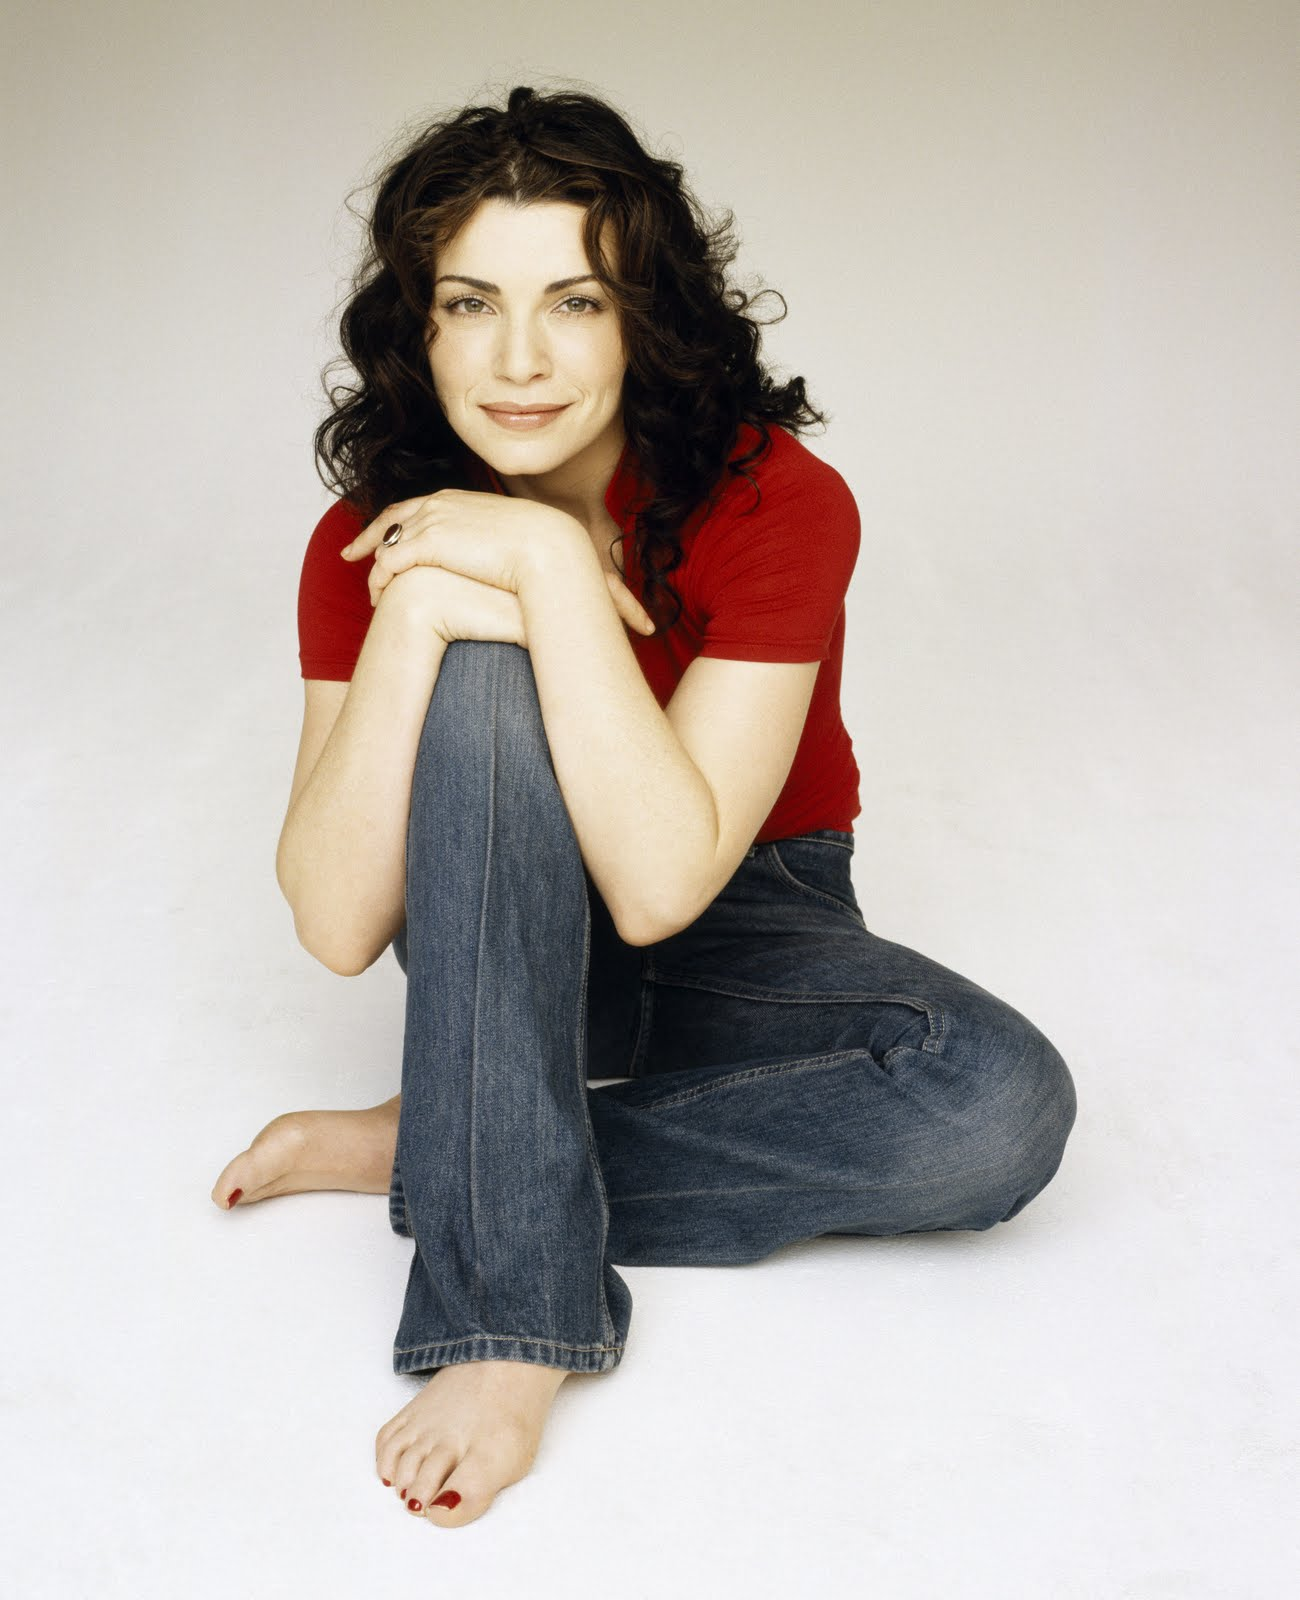 Julianna Margulies is an excellent American actress, perhaps best